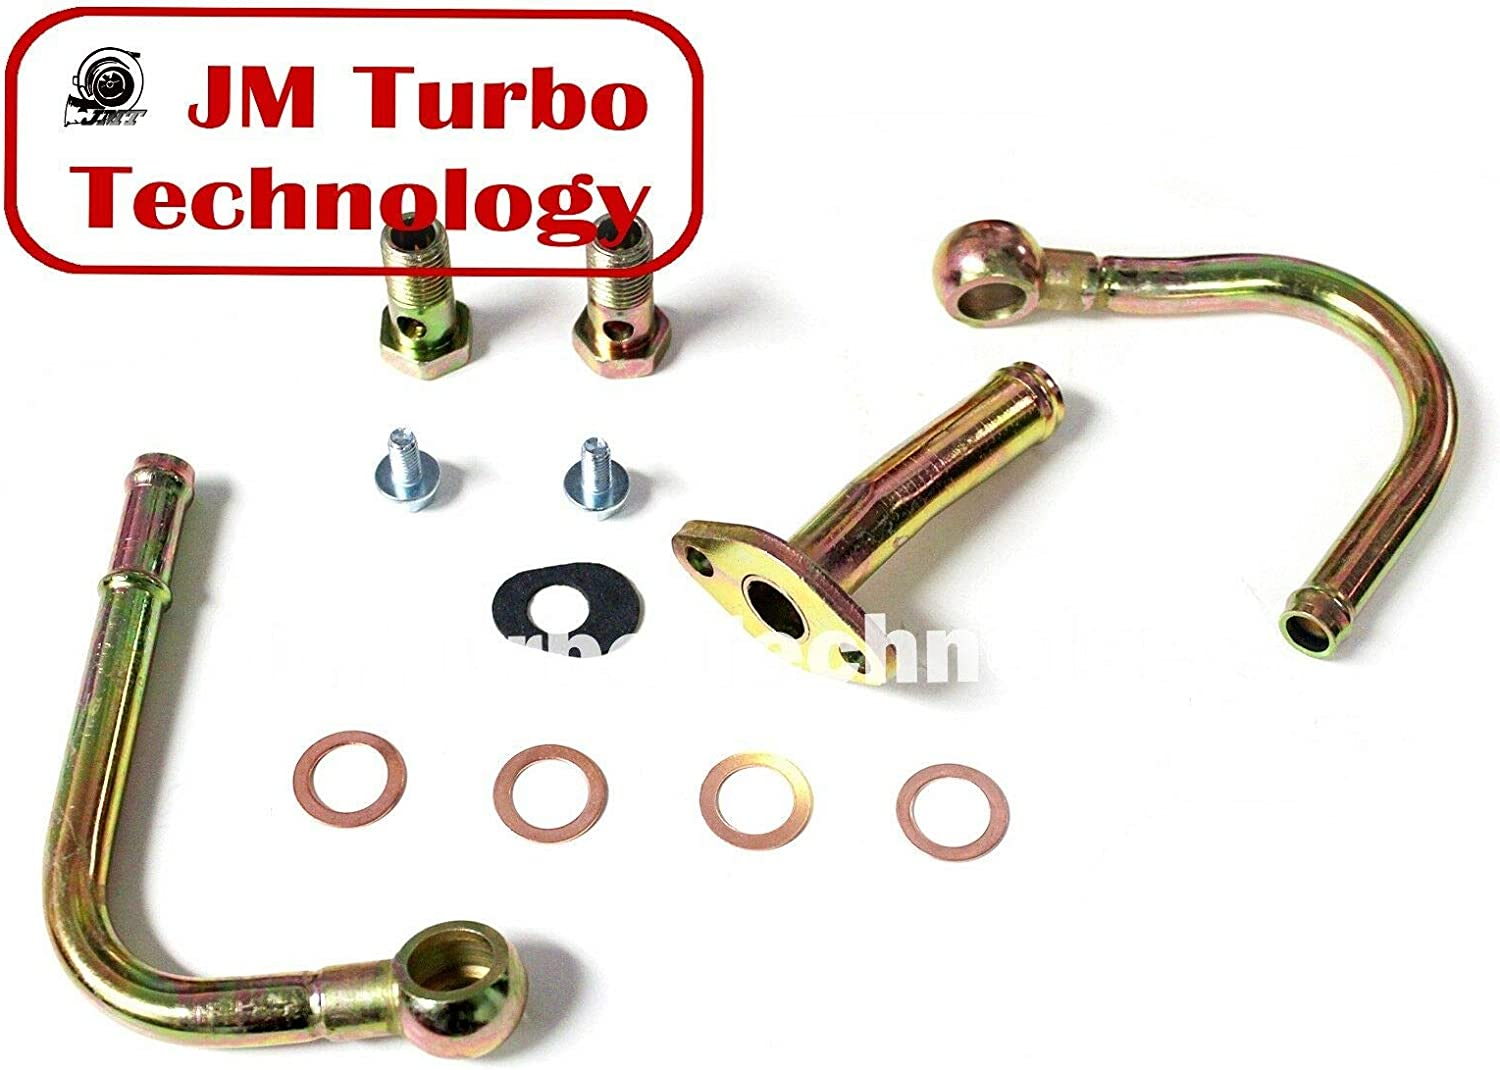 JM Water cooling lines fit Subaru WRX/STI Water line Kits TD06 20G Turbo